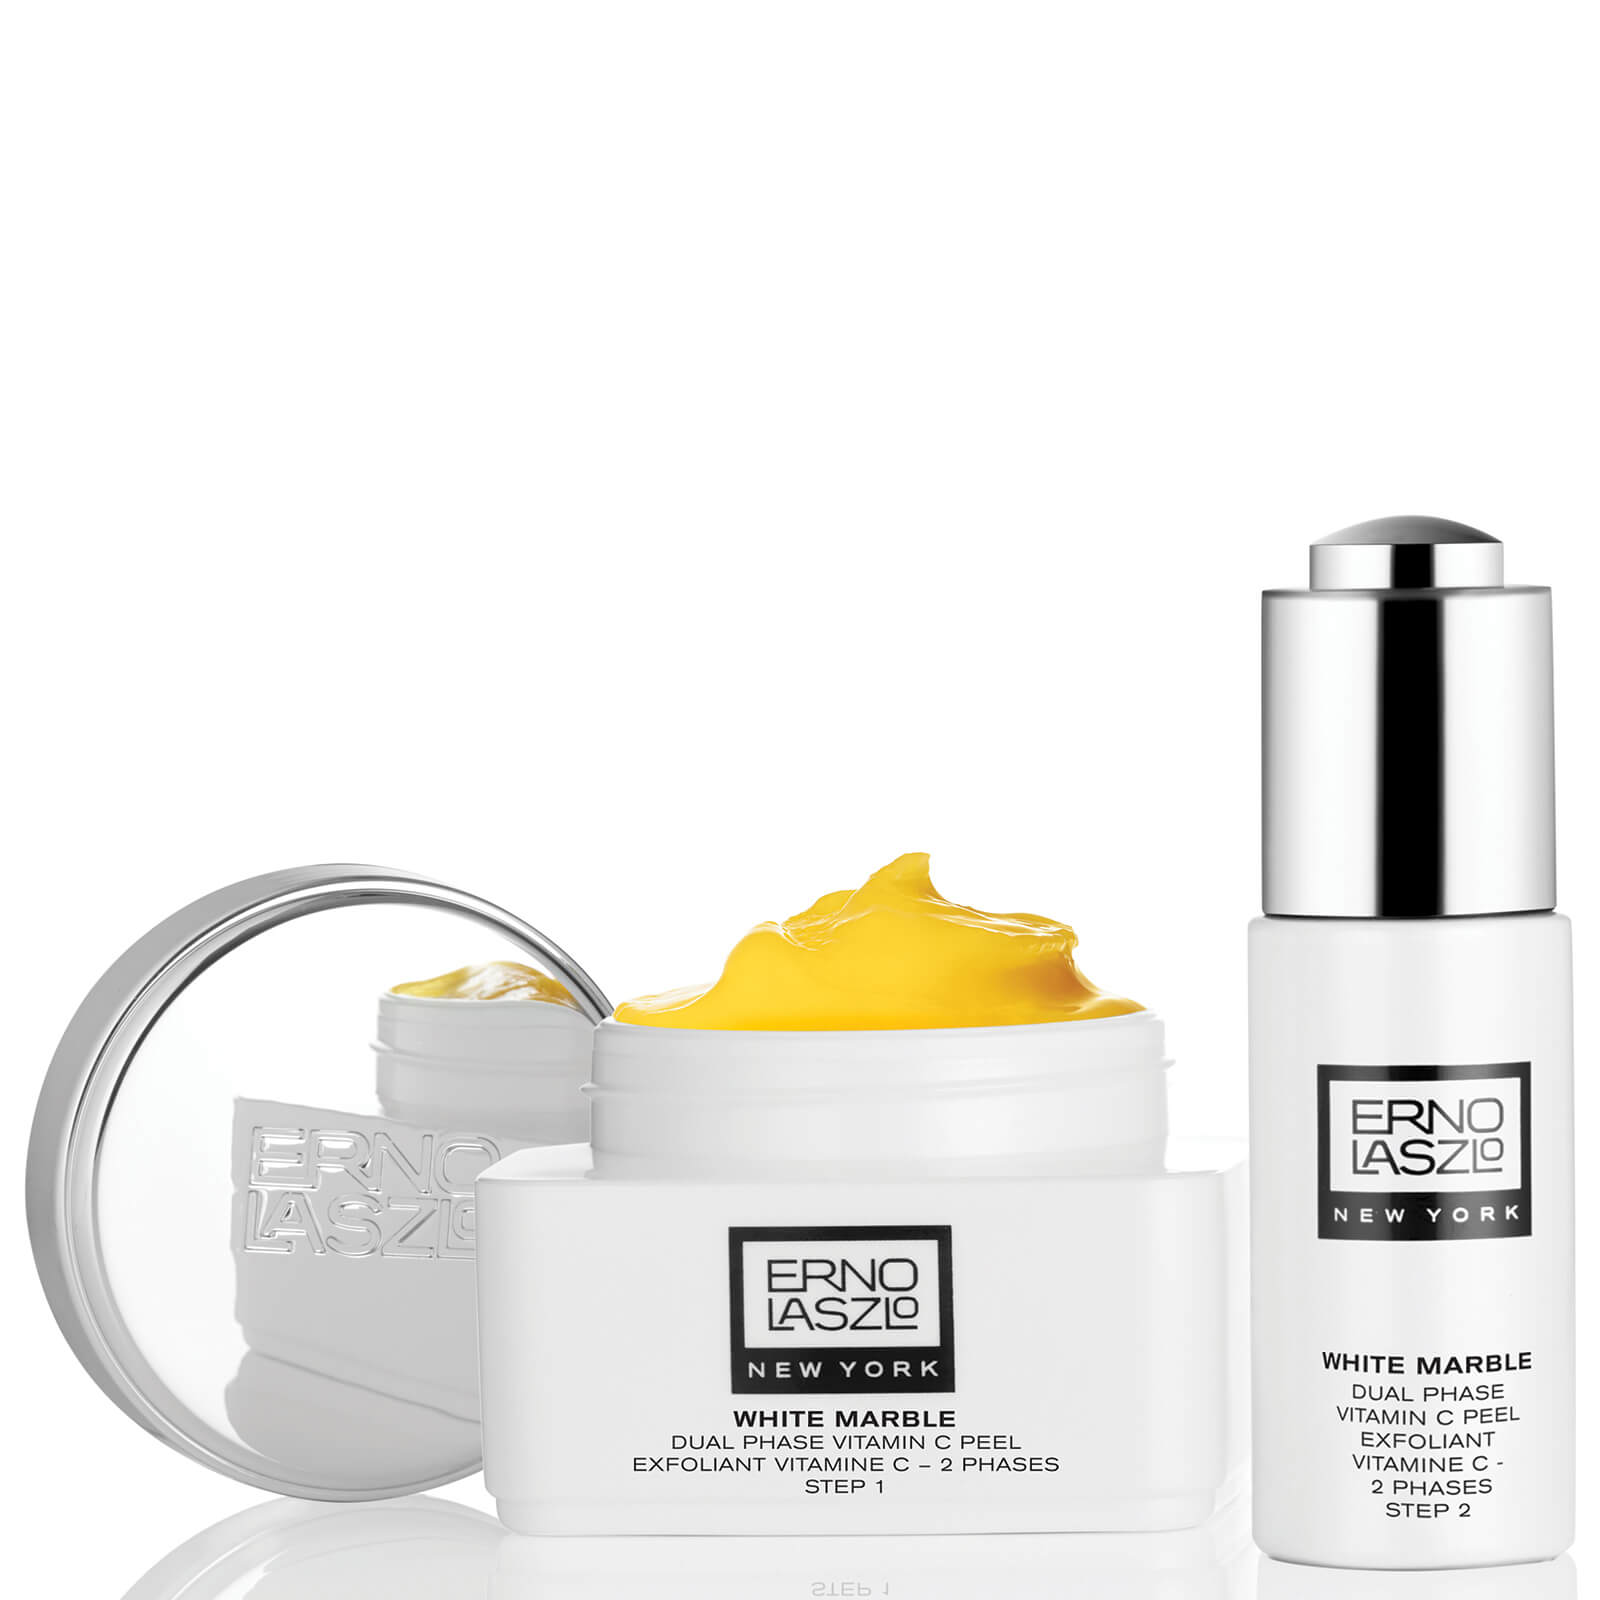 Watch a story about ERNO LASZLO WHITE MARBLE DUAL PHASE VITAMIN C PEEL